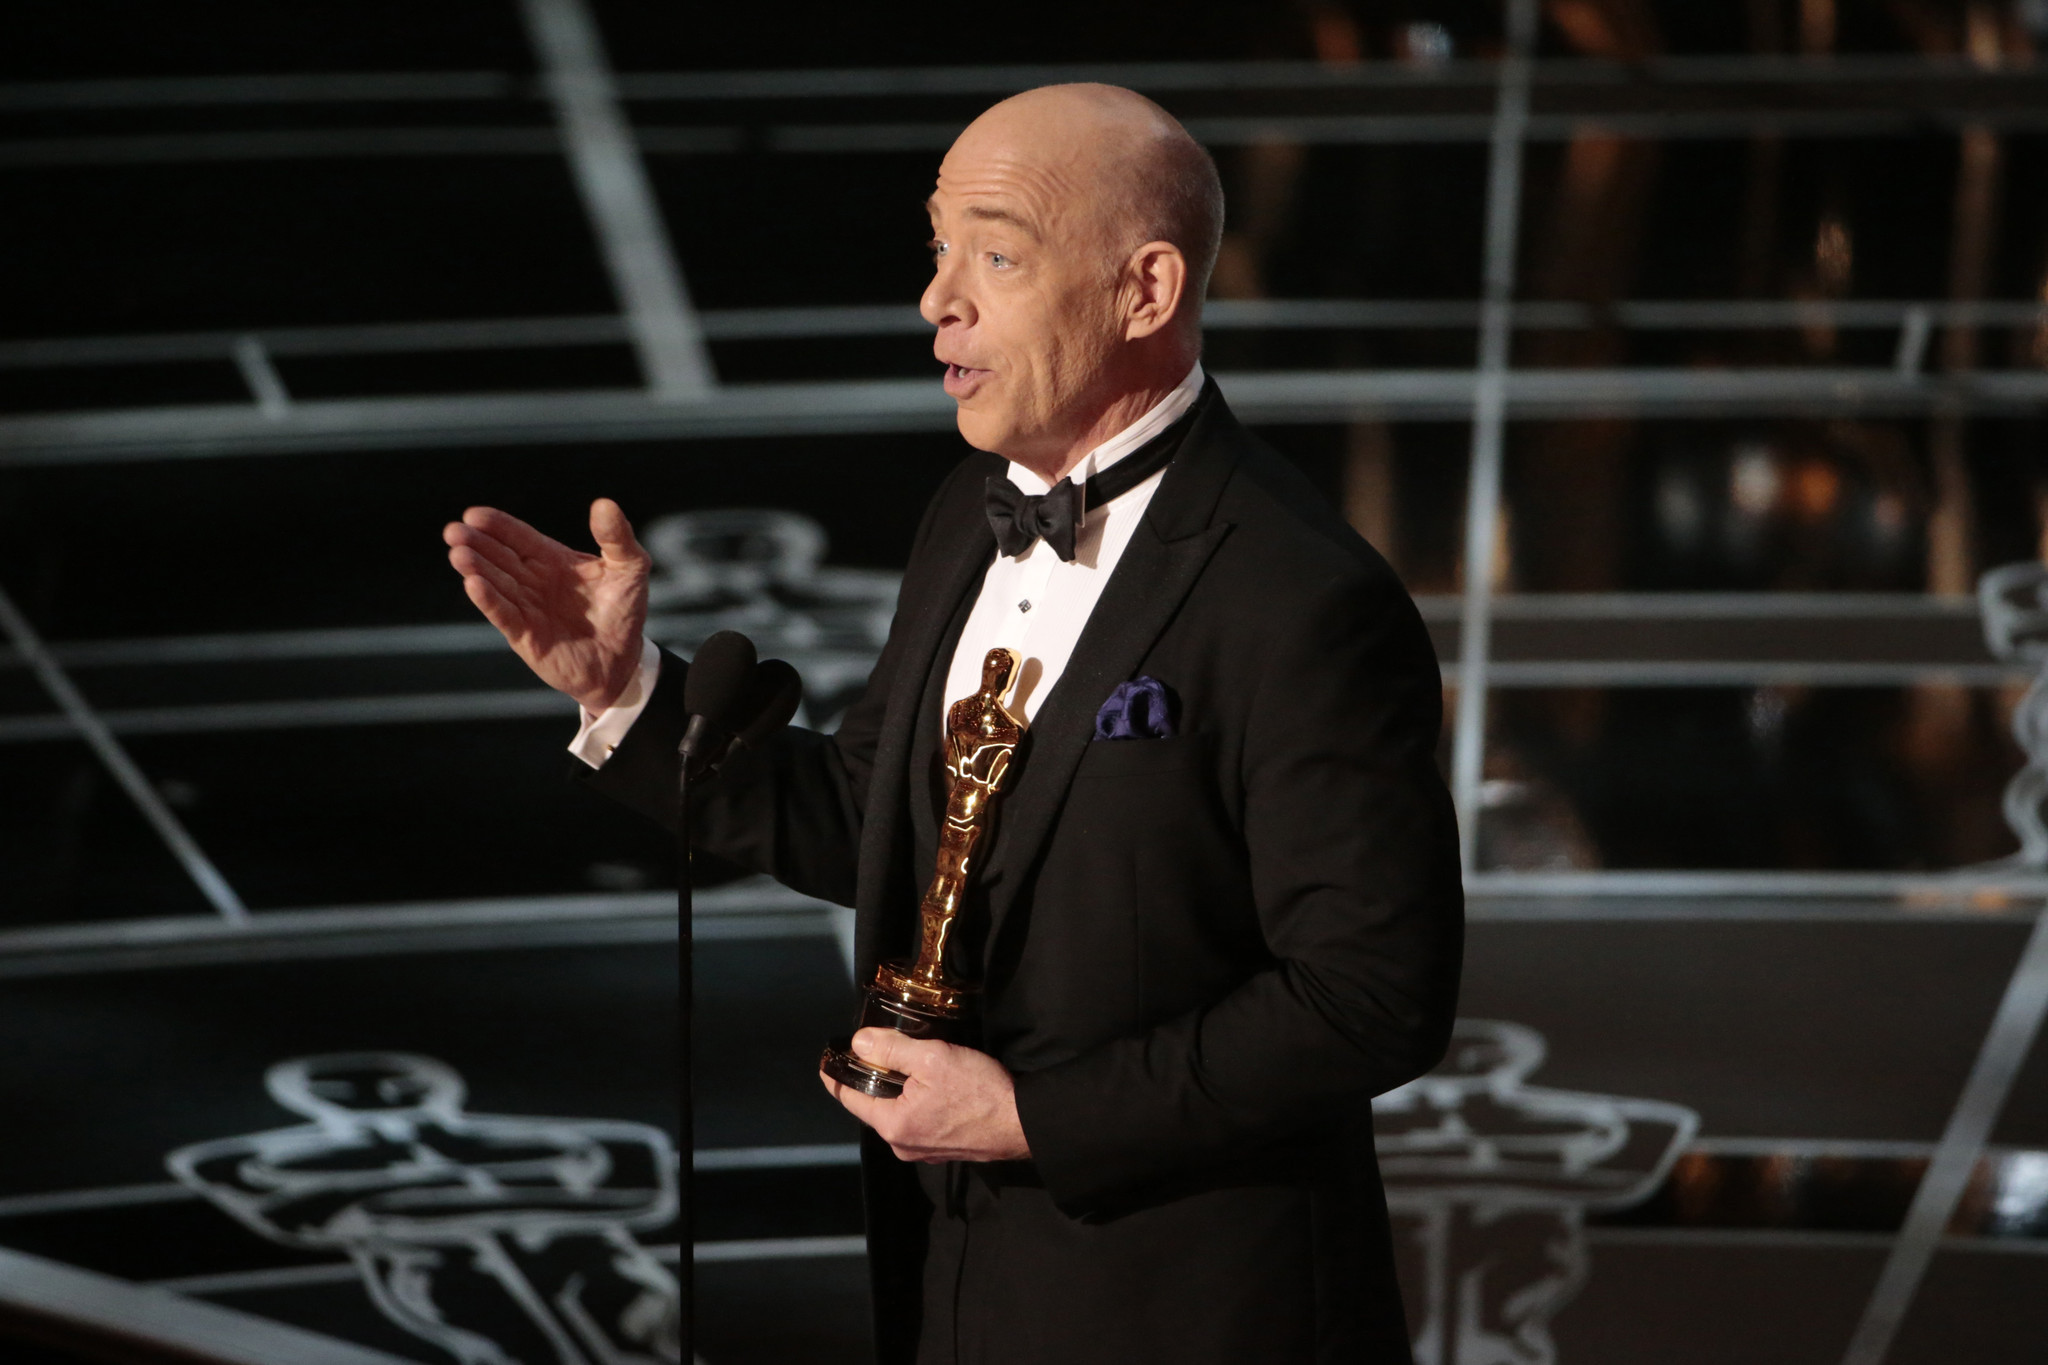 Oscars 2015: J.K. Simmons expounds on lean times and ...